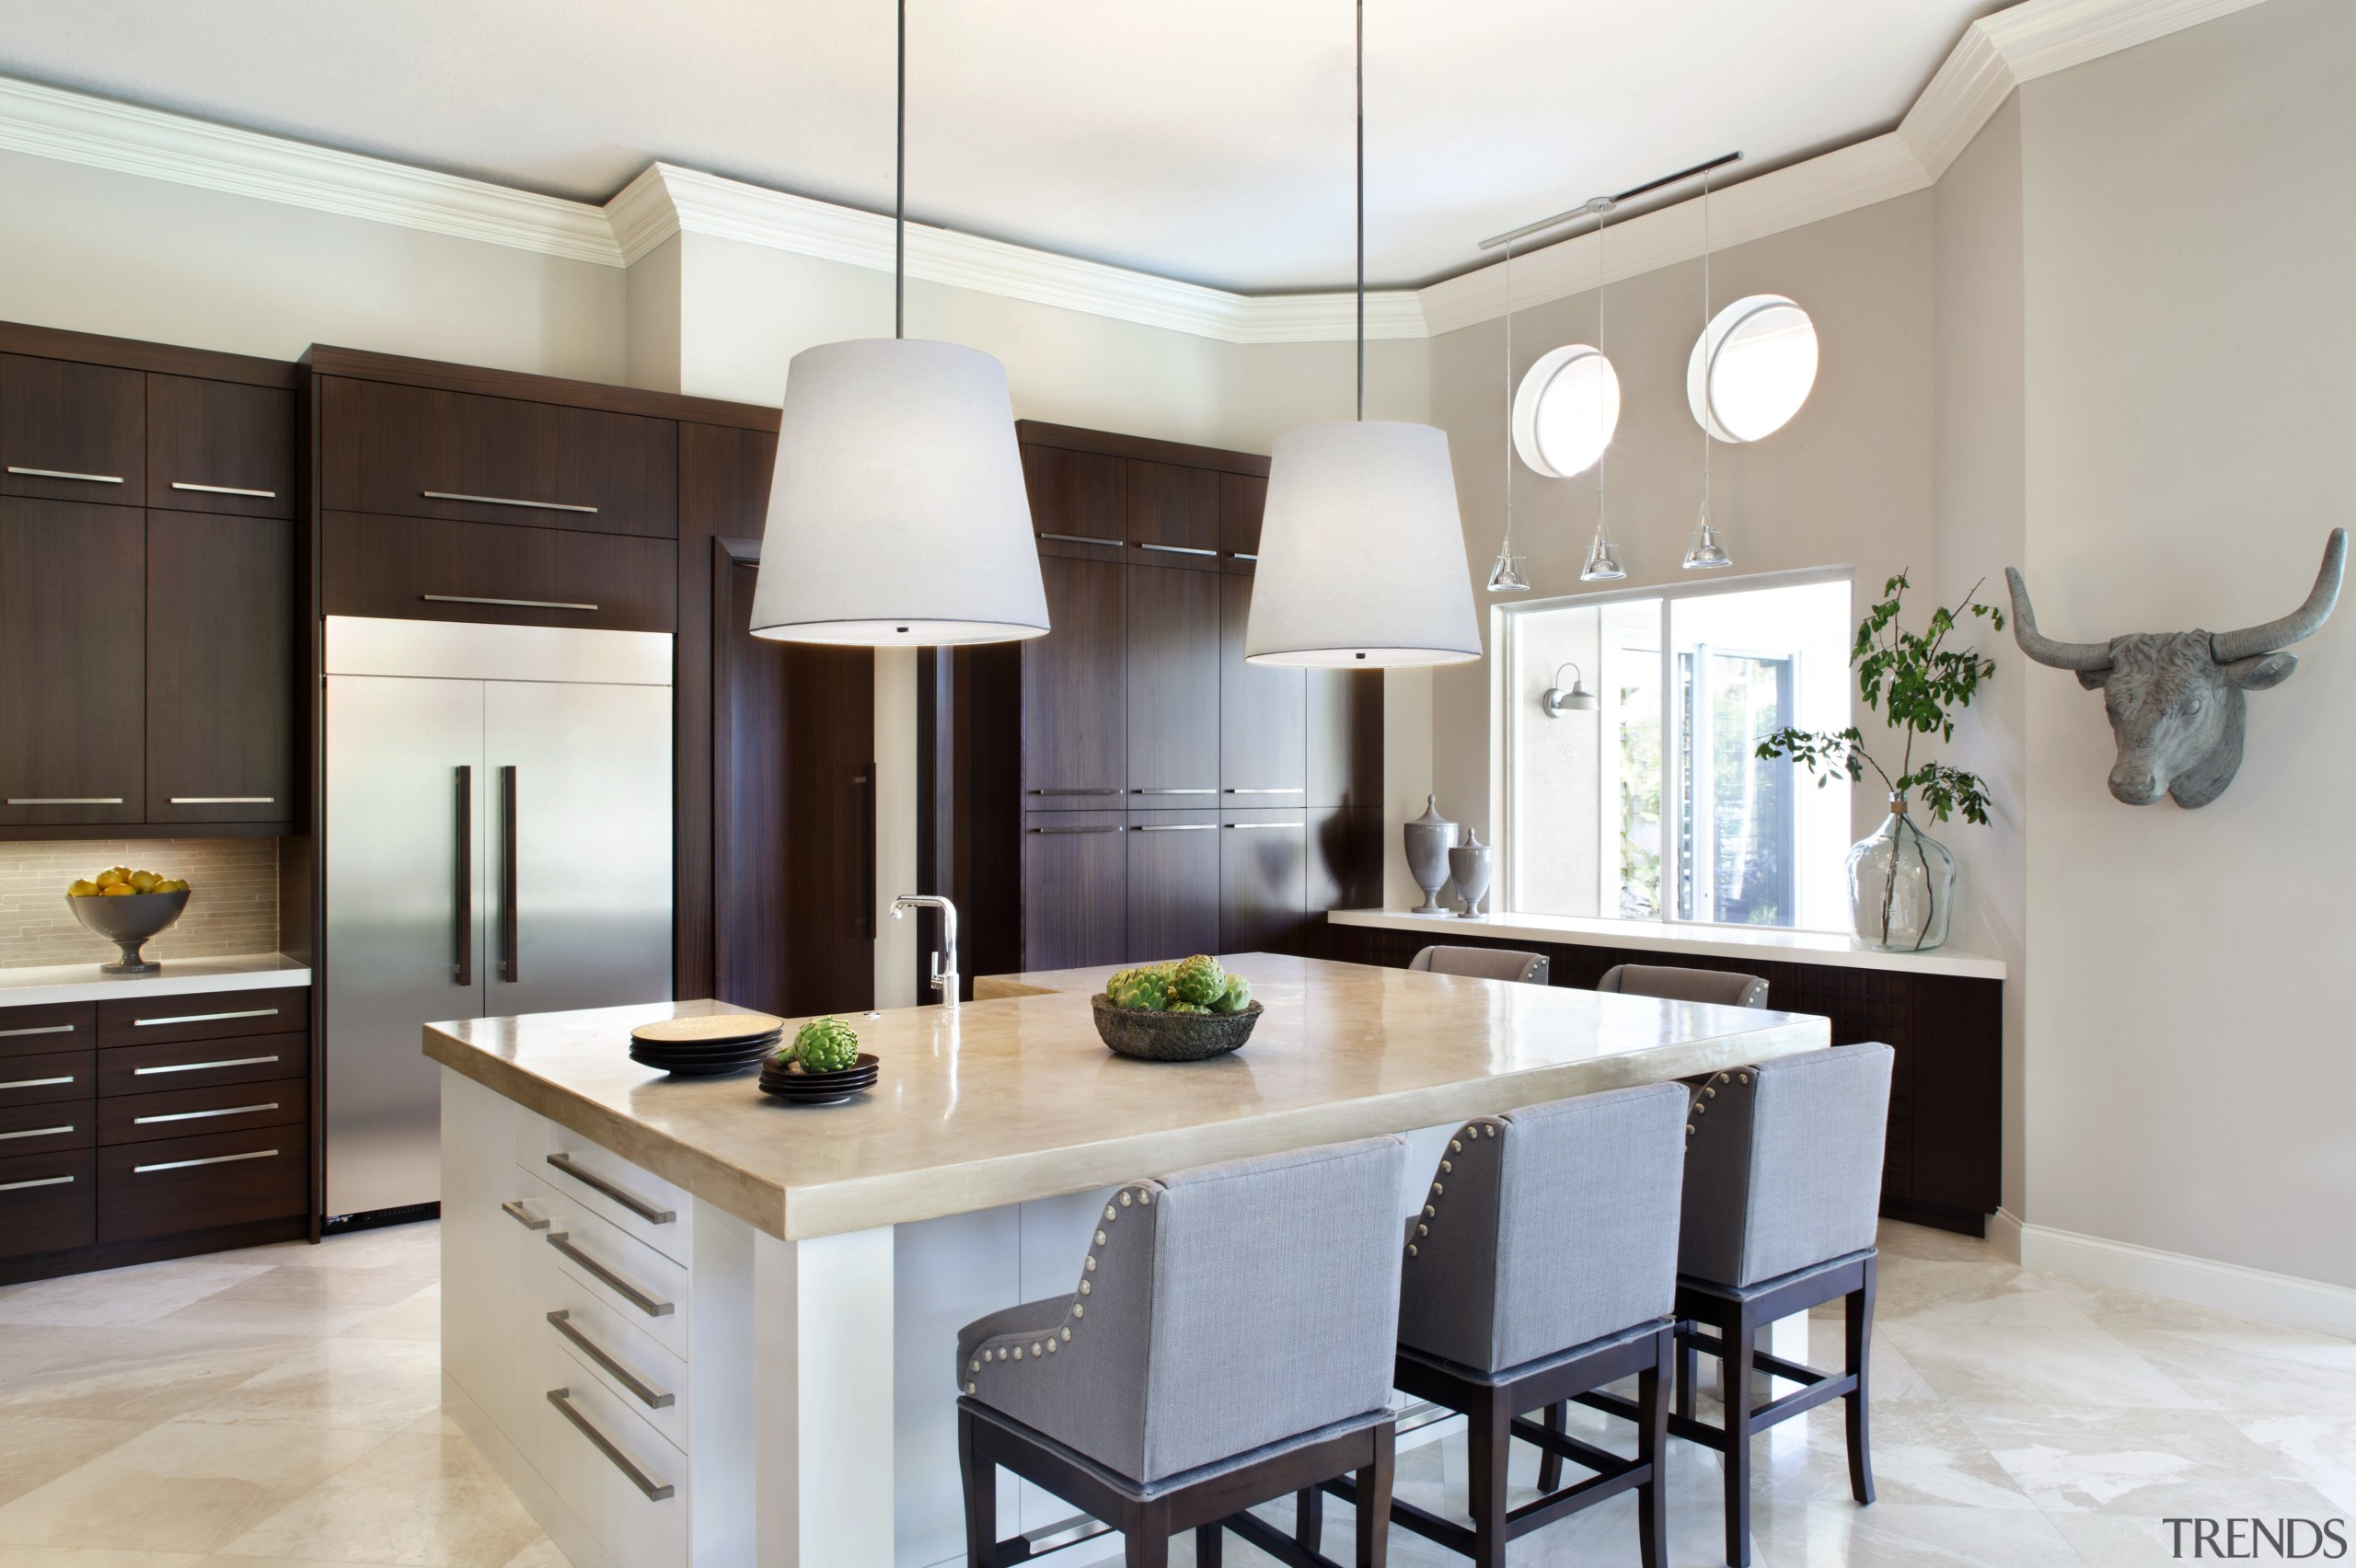 Sleek, streamlined and uncluttered  this remodelled kitchen cabinetry, countertop, cuisine classique, interior design, kitchen, real estate, room, gray